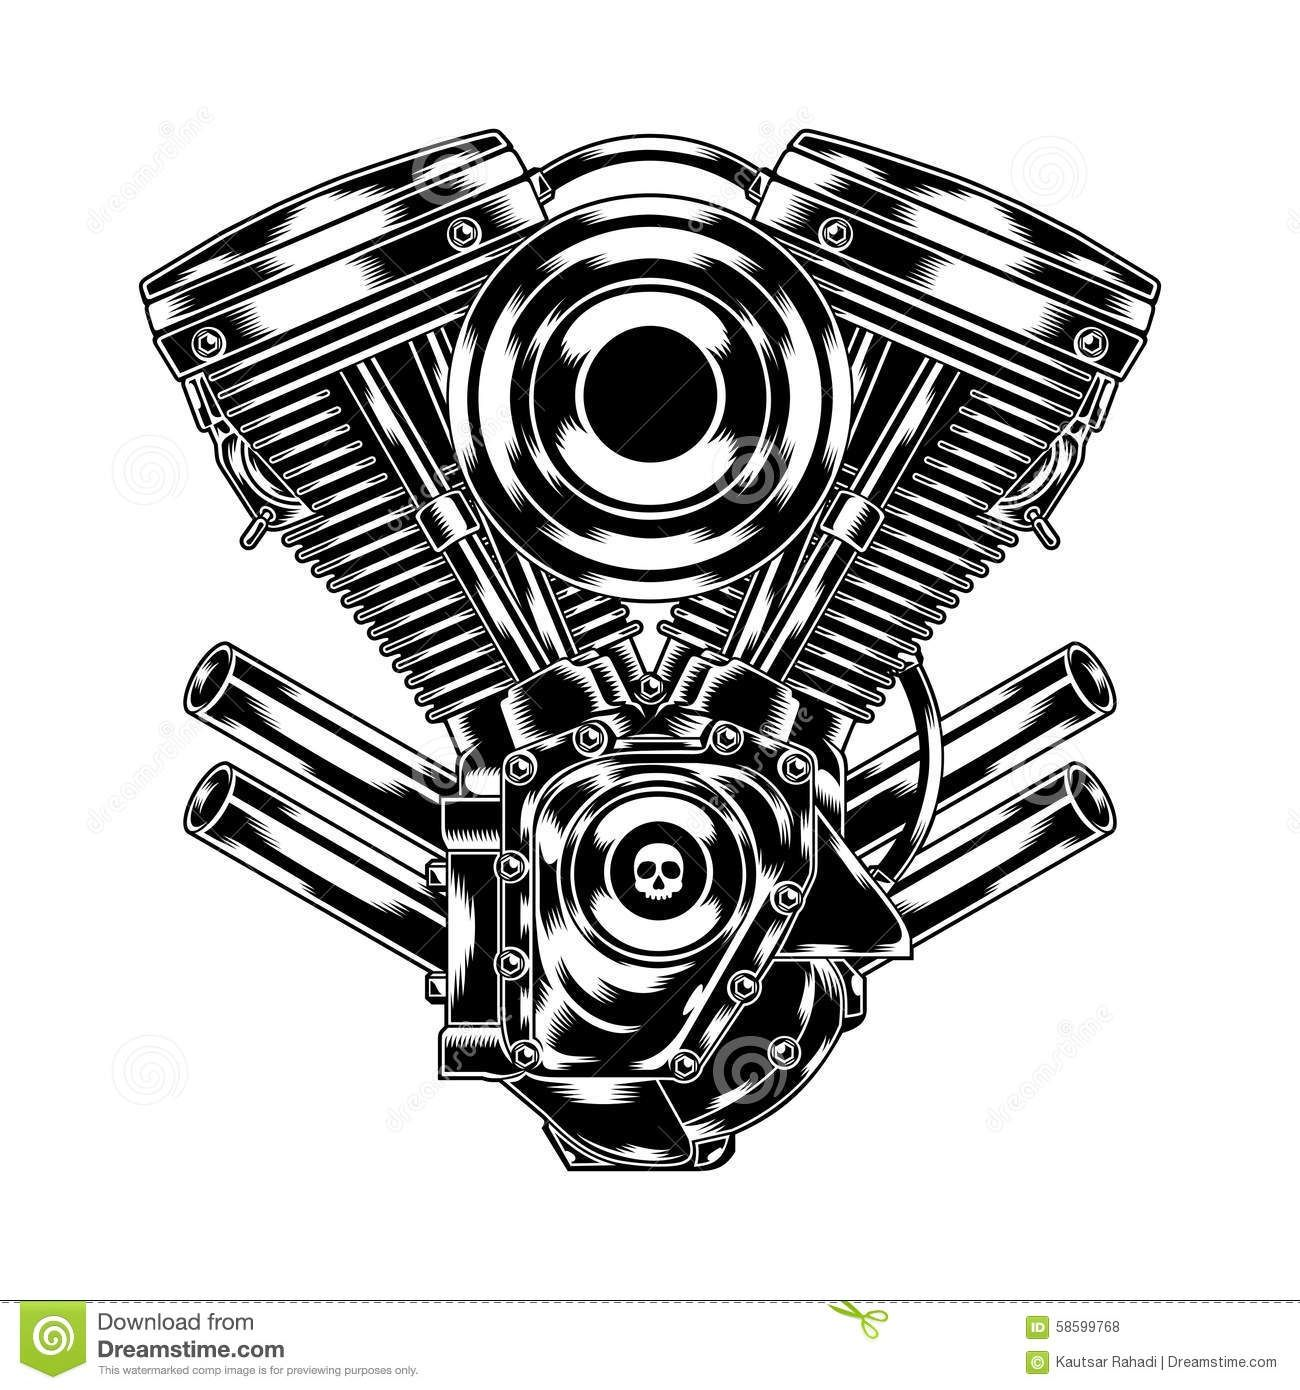 Engine clipart motorcycle #10.